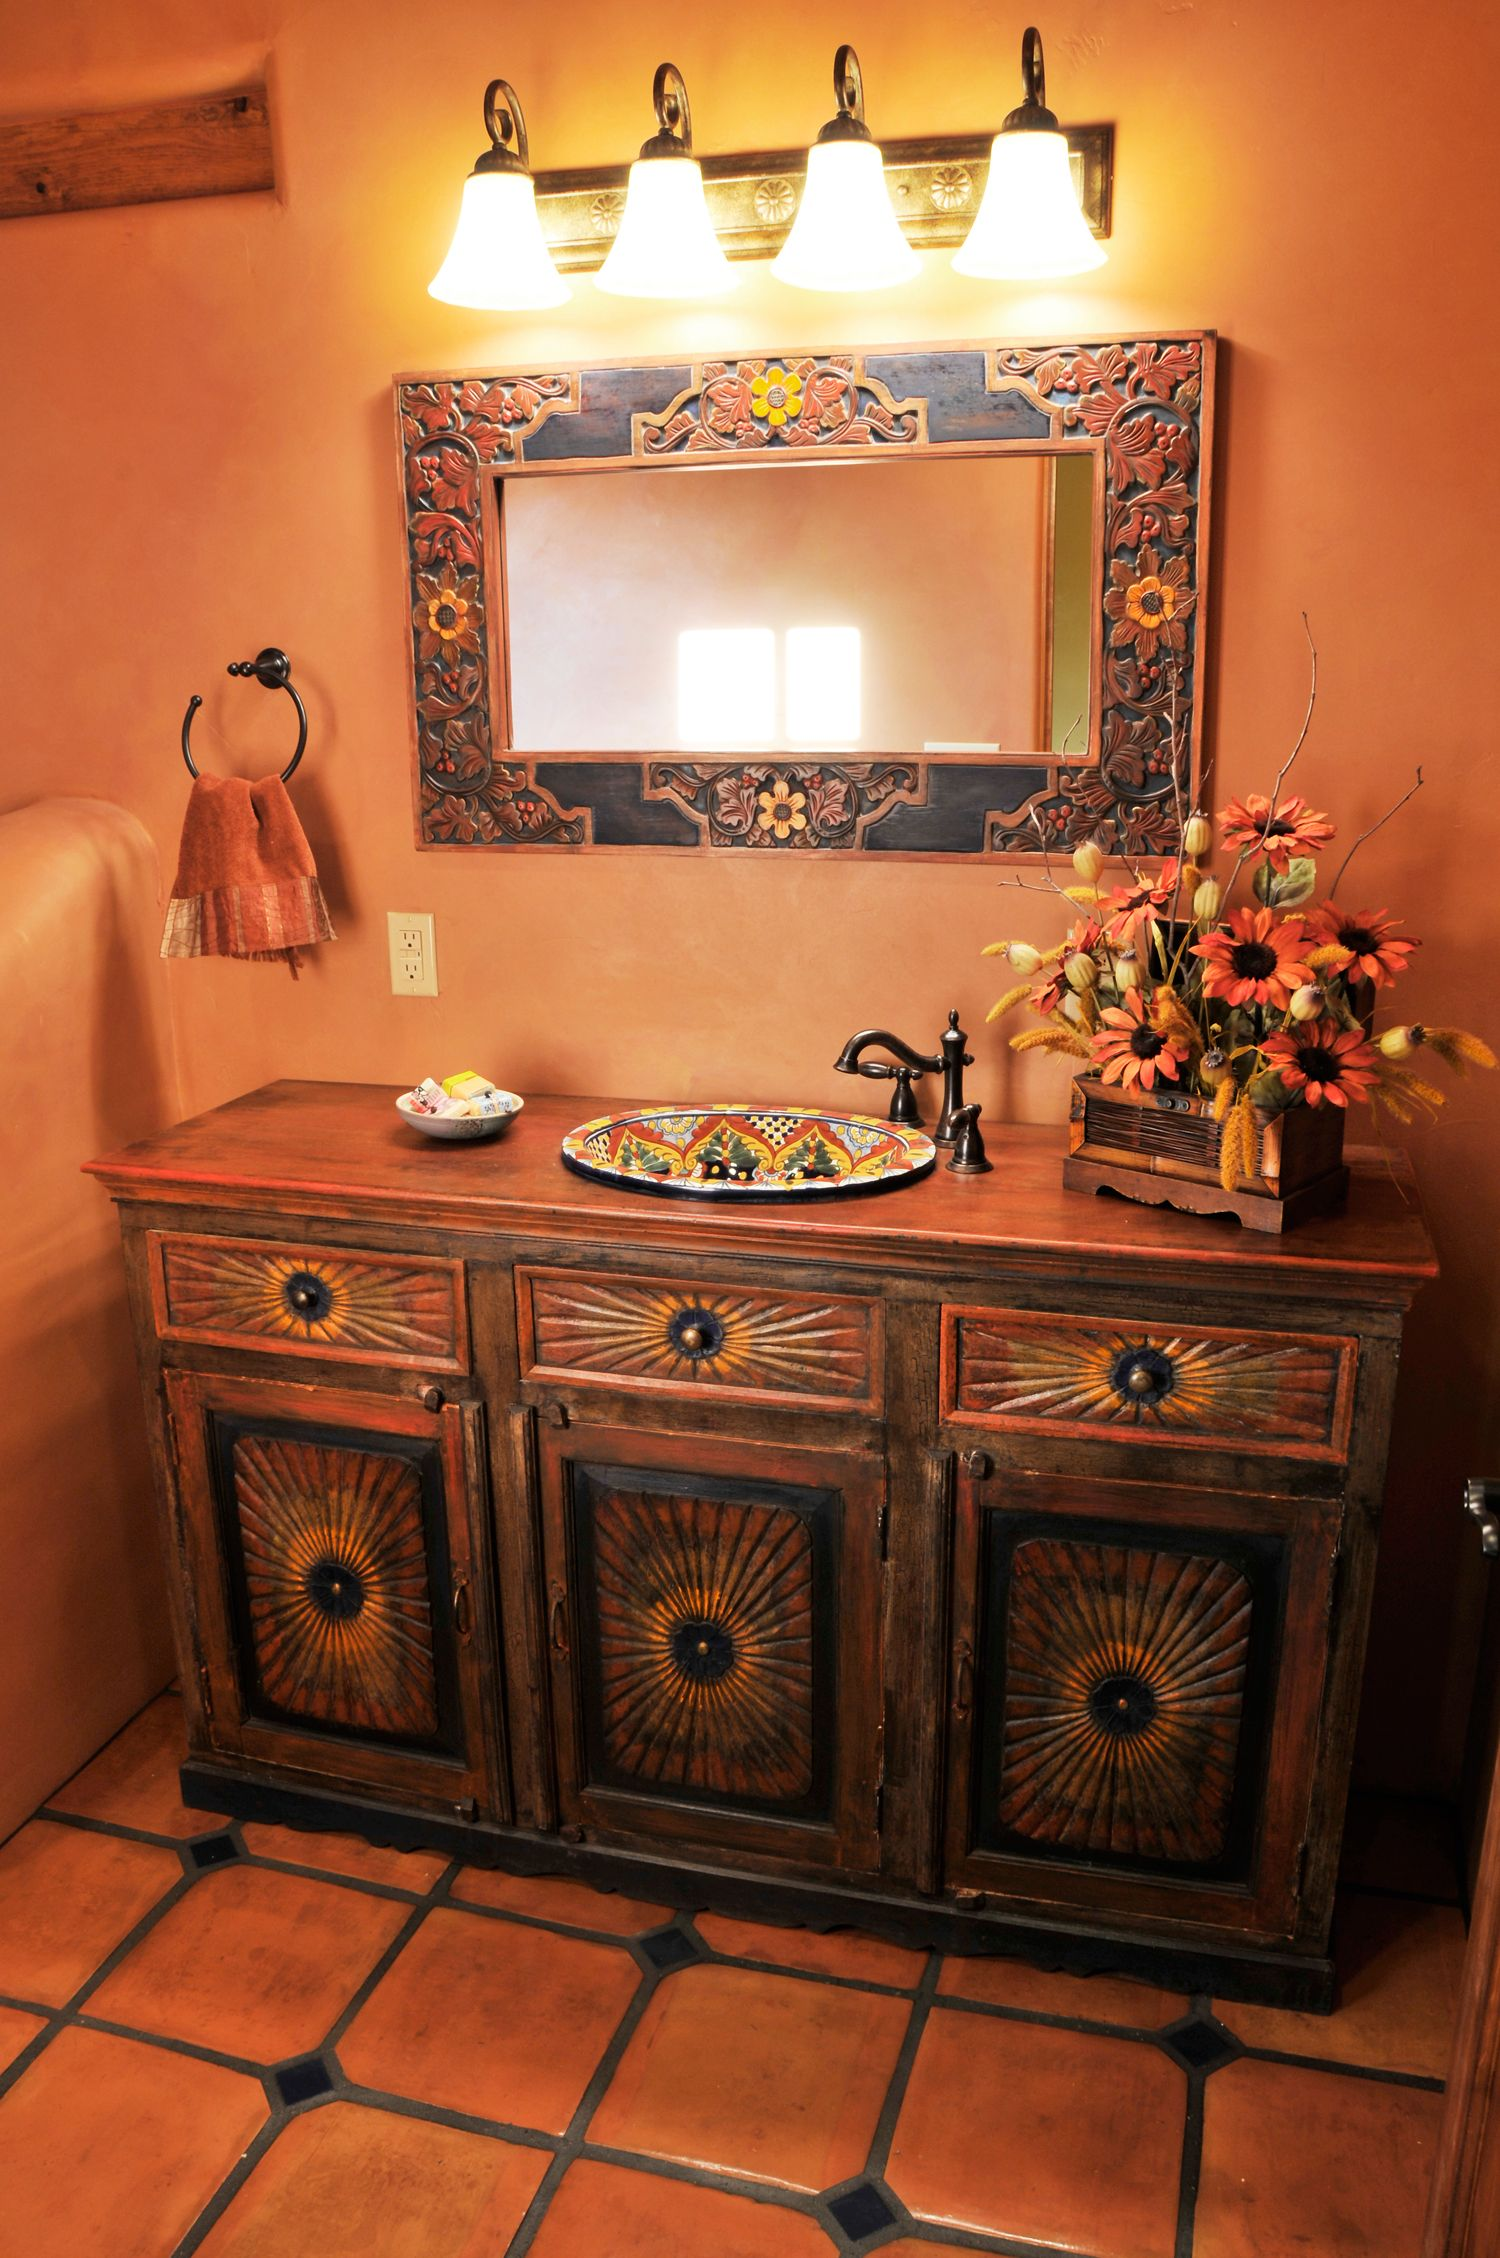 images about mexican decor on pinterest new mexico homes stucco homes and spanish style kitchens: new mexico home decor